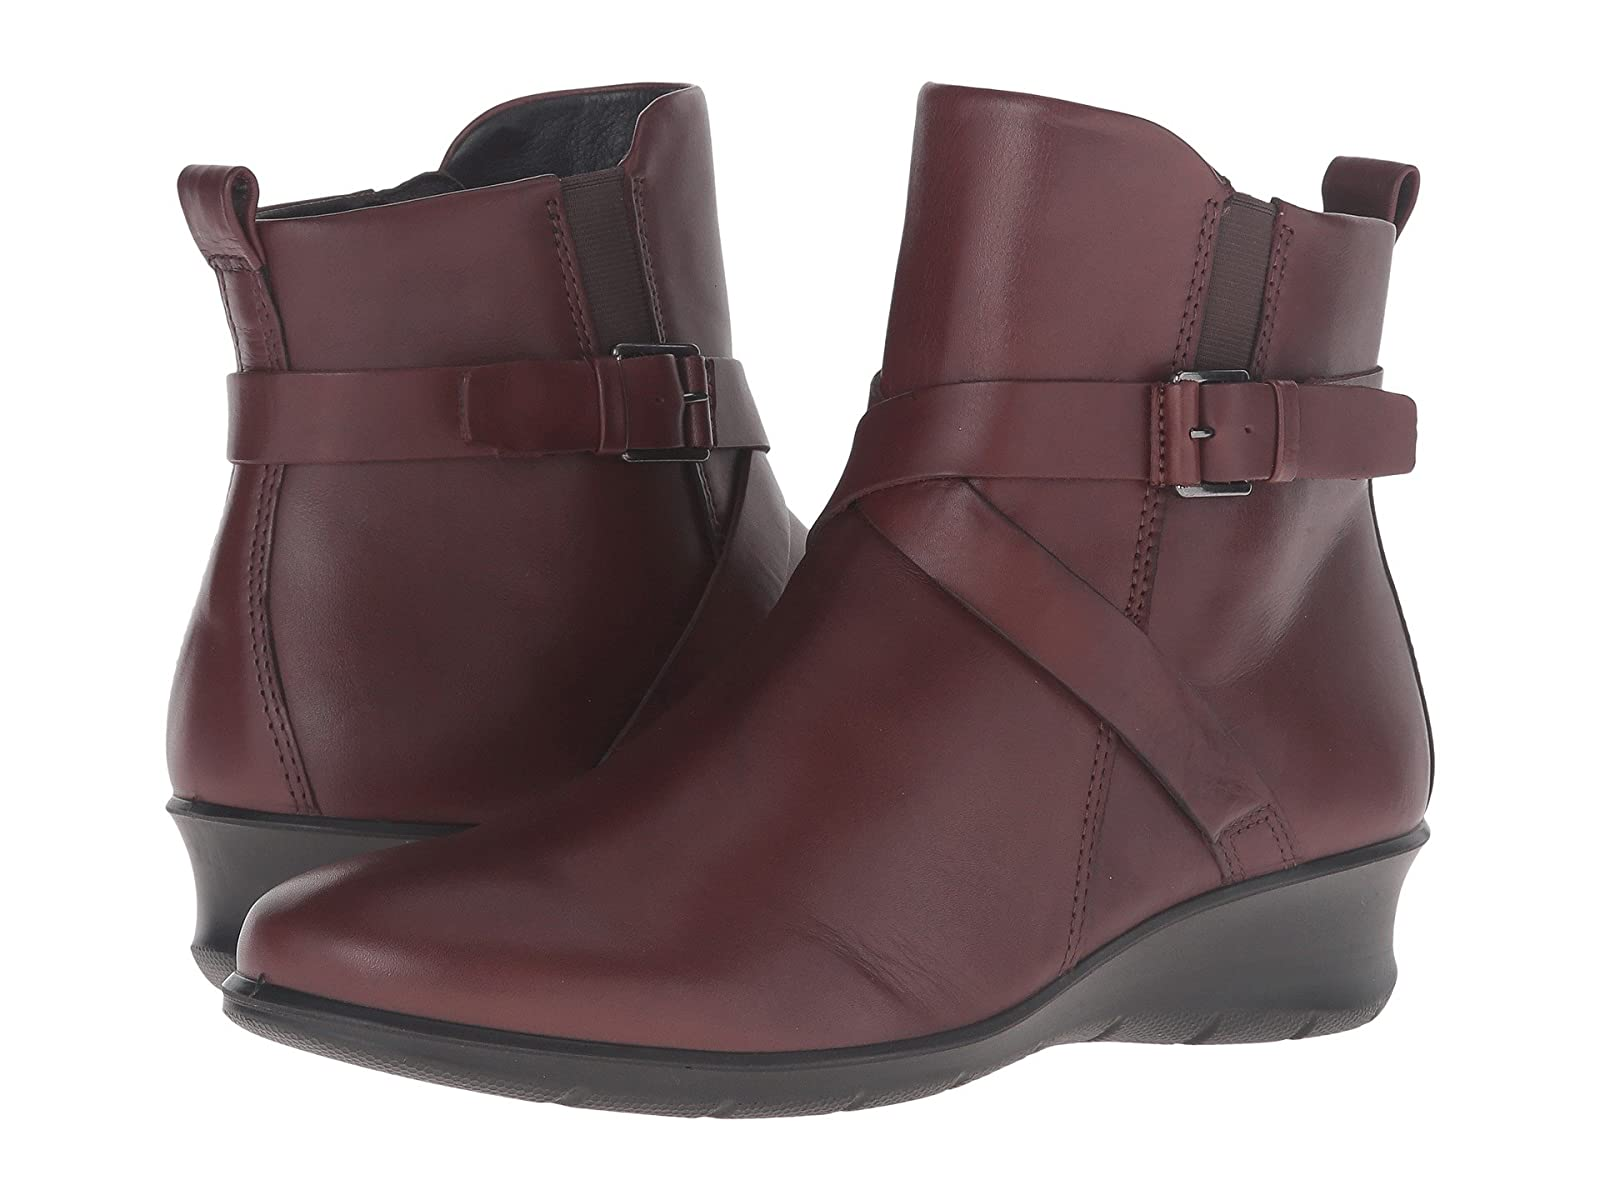 ECCO Felicia Ankle BuckleCheap and distinctive eye-catching shoes